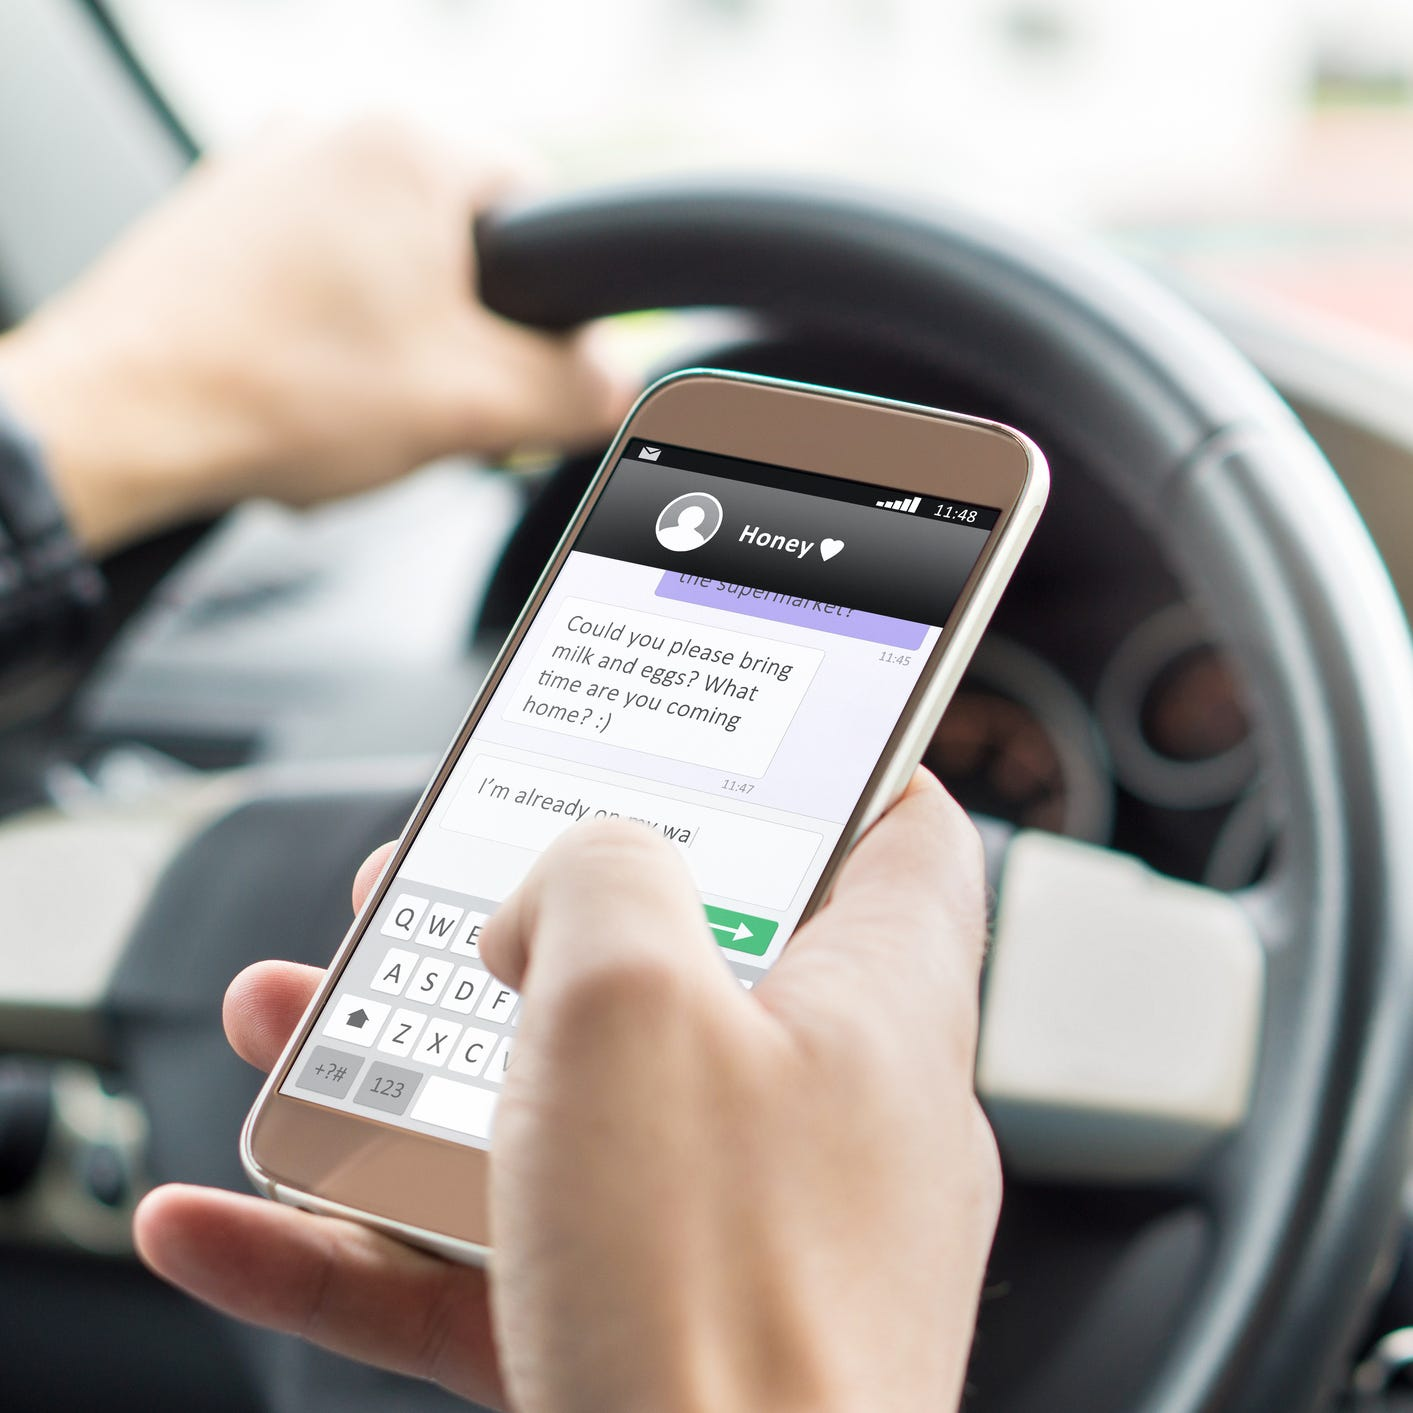 New Florida law means you can now get pulled over for texting while driving